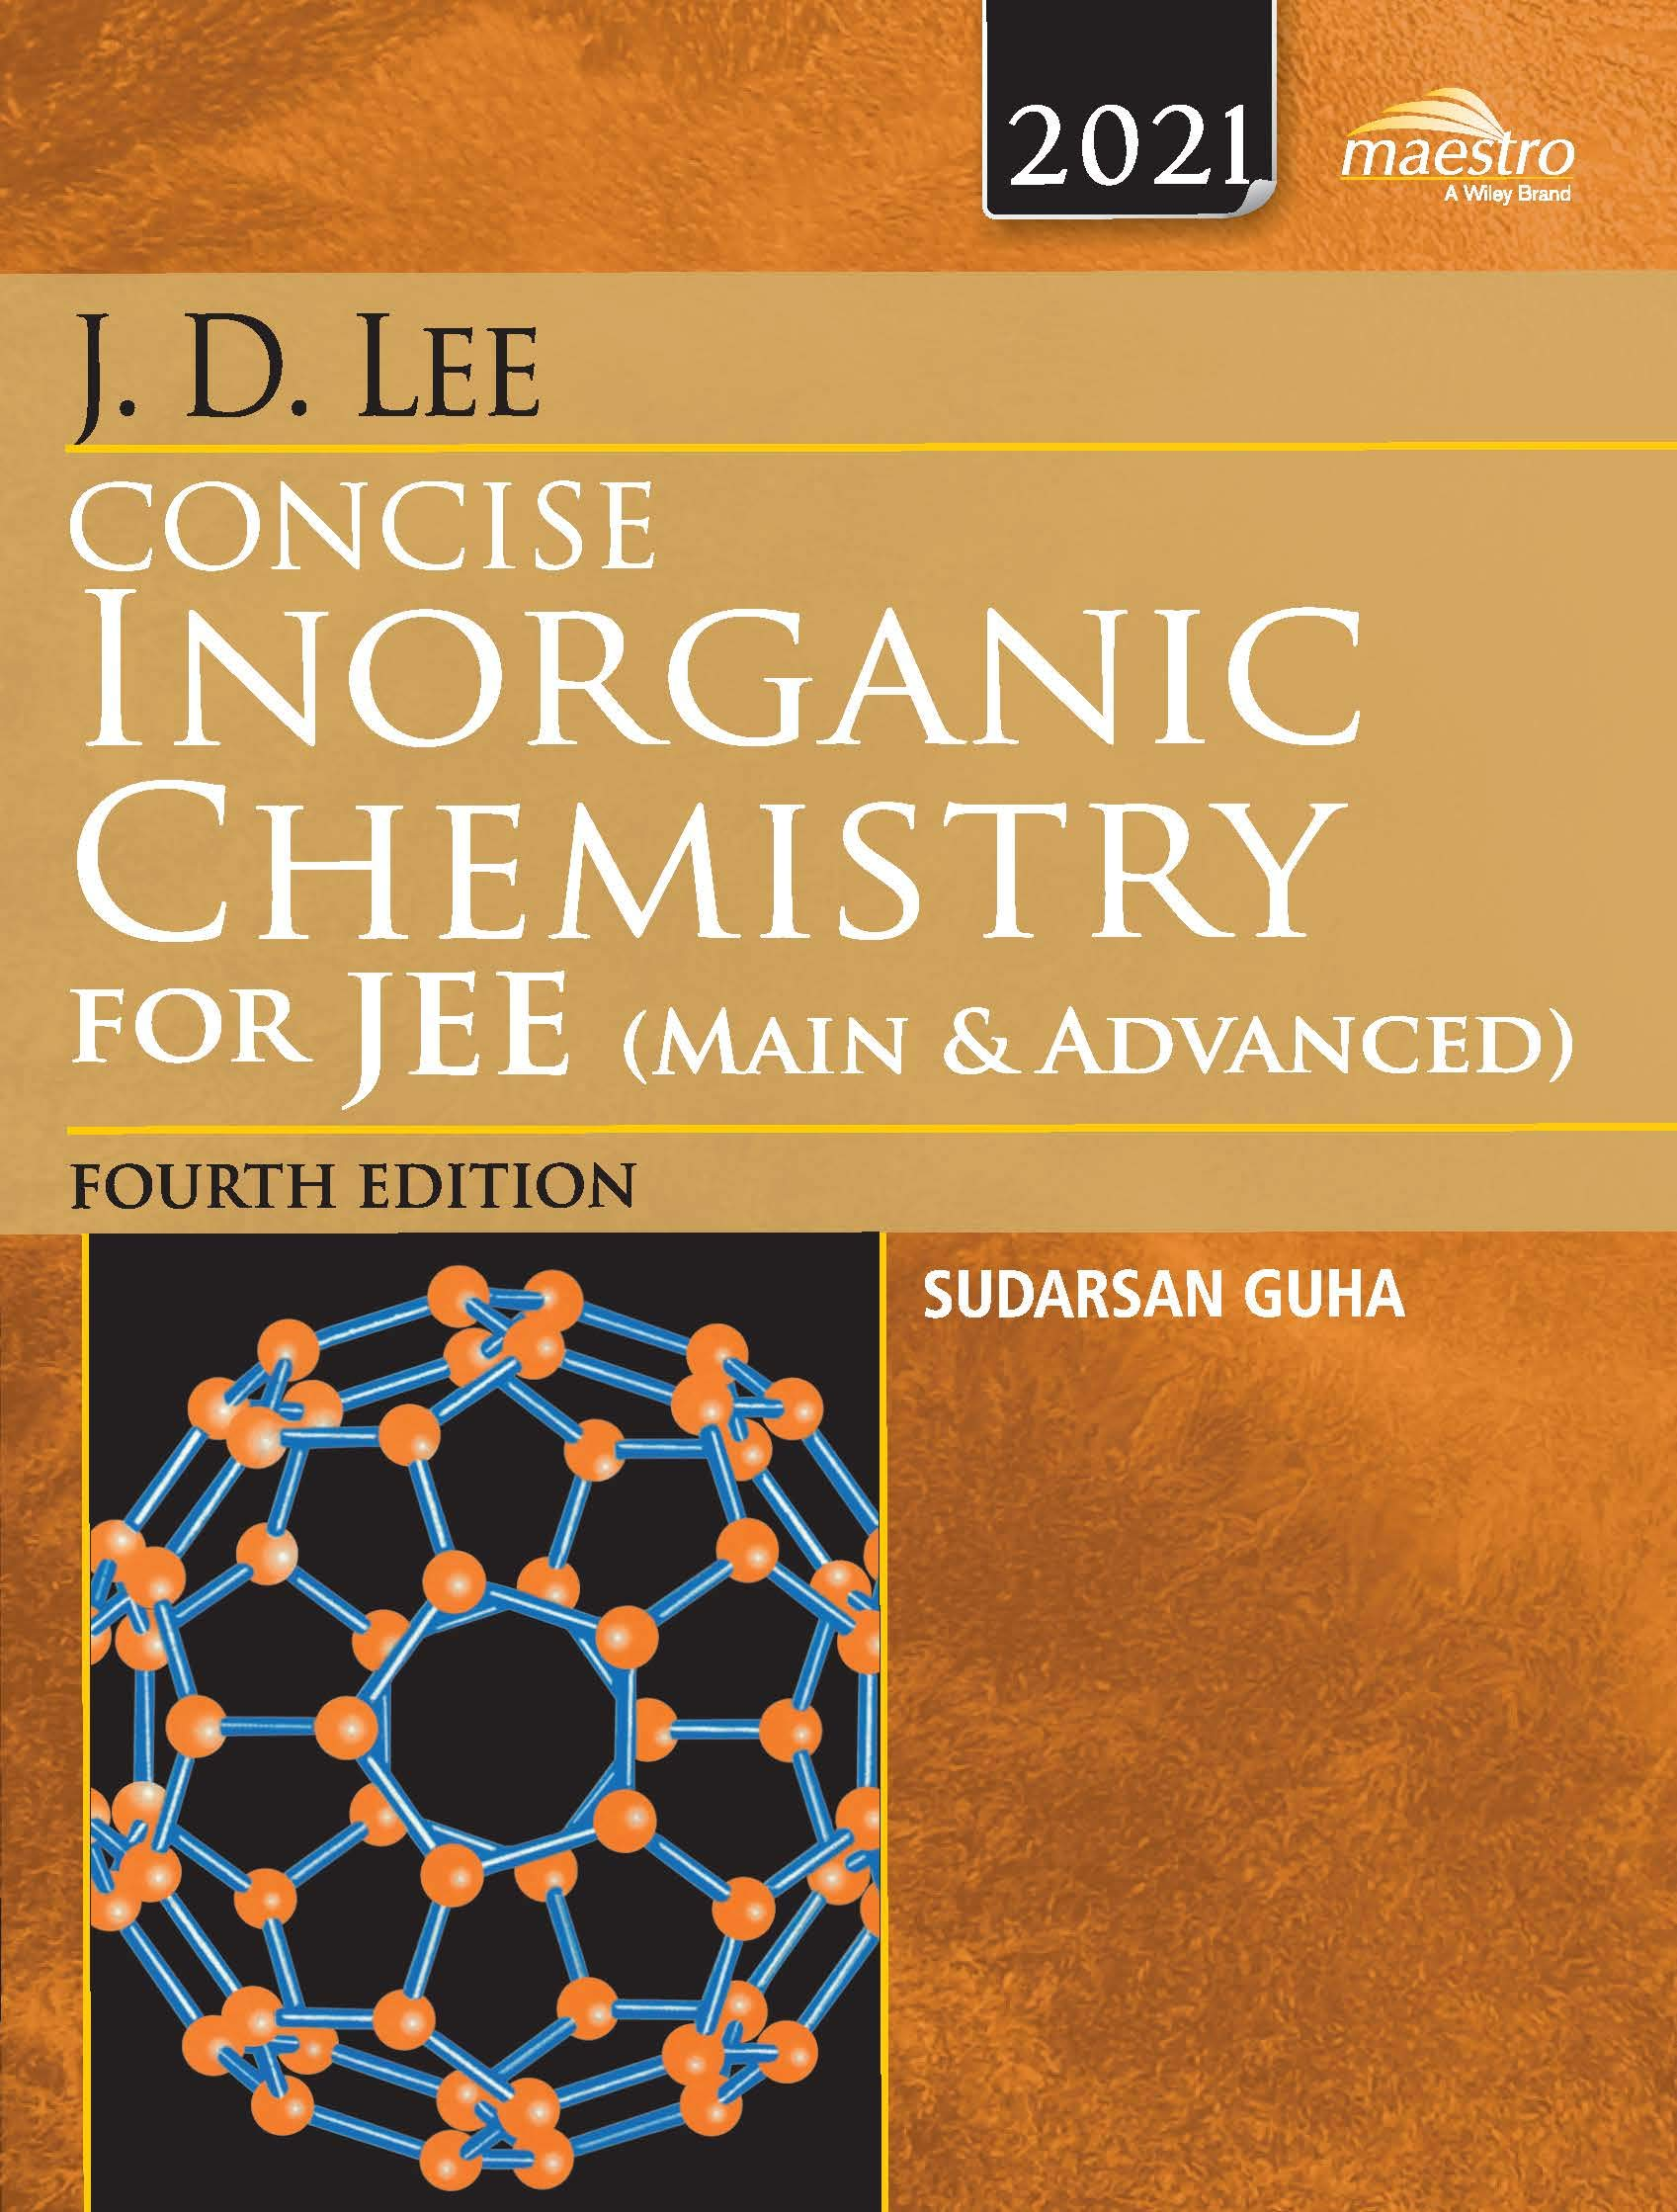 Wiley's J.D. Lee Concise Inorganic Chemistry for JEE